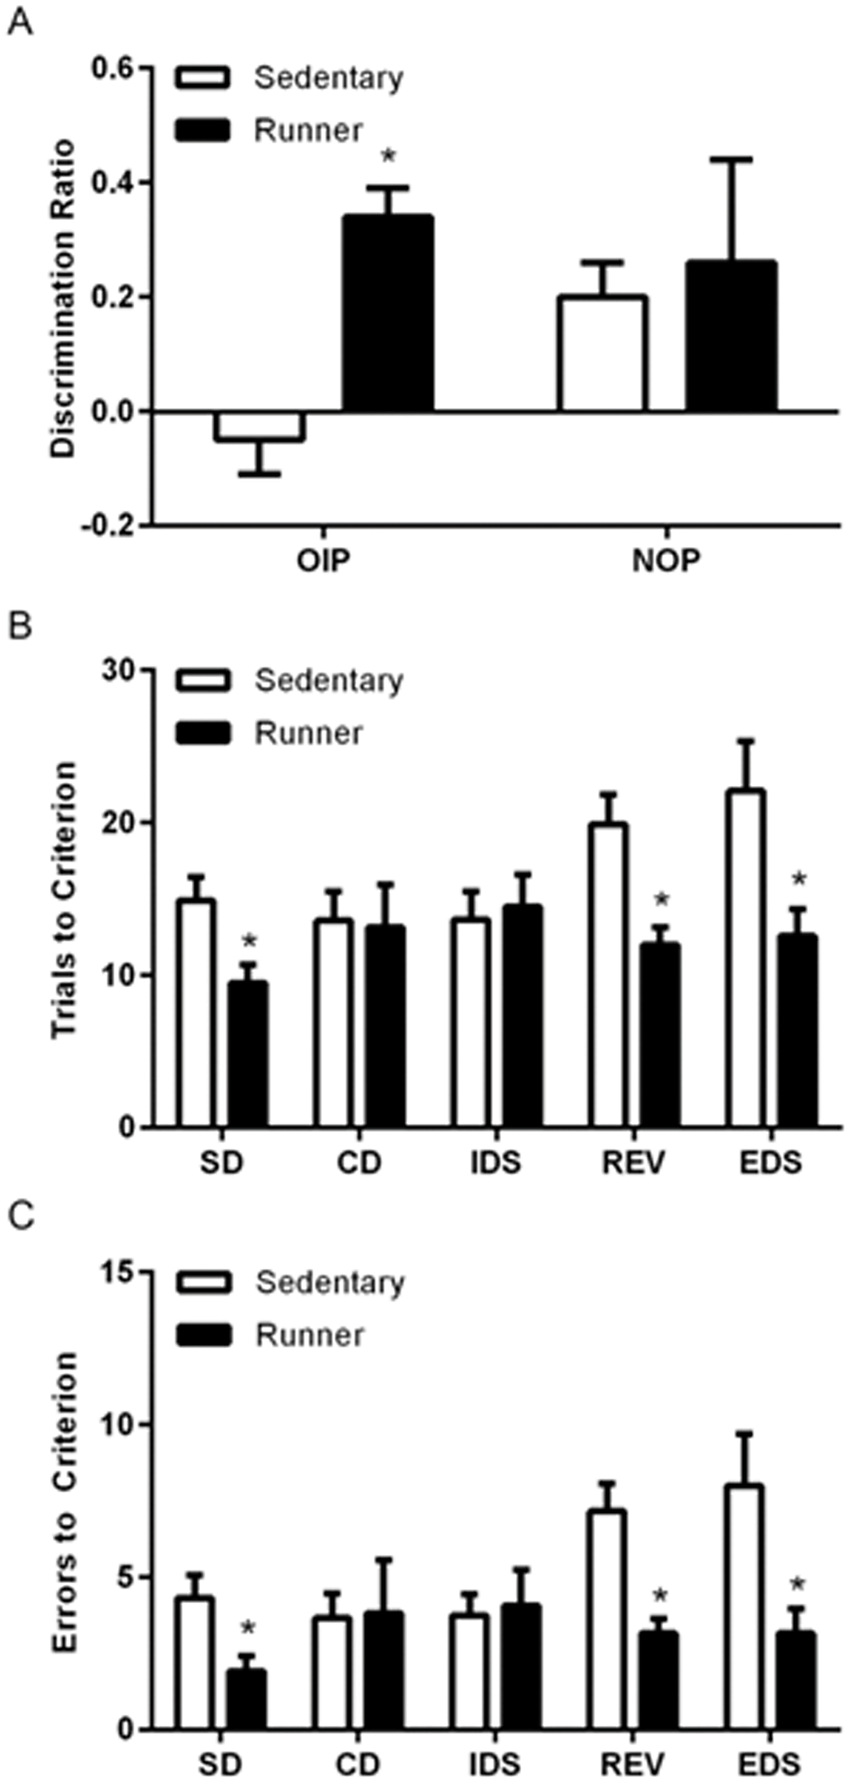 Running enhances cognitive performance on tasks known to